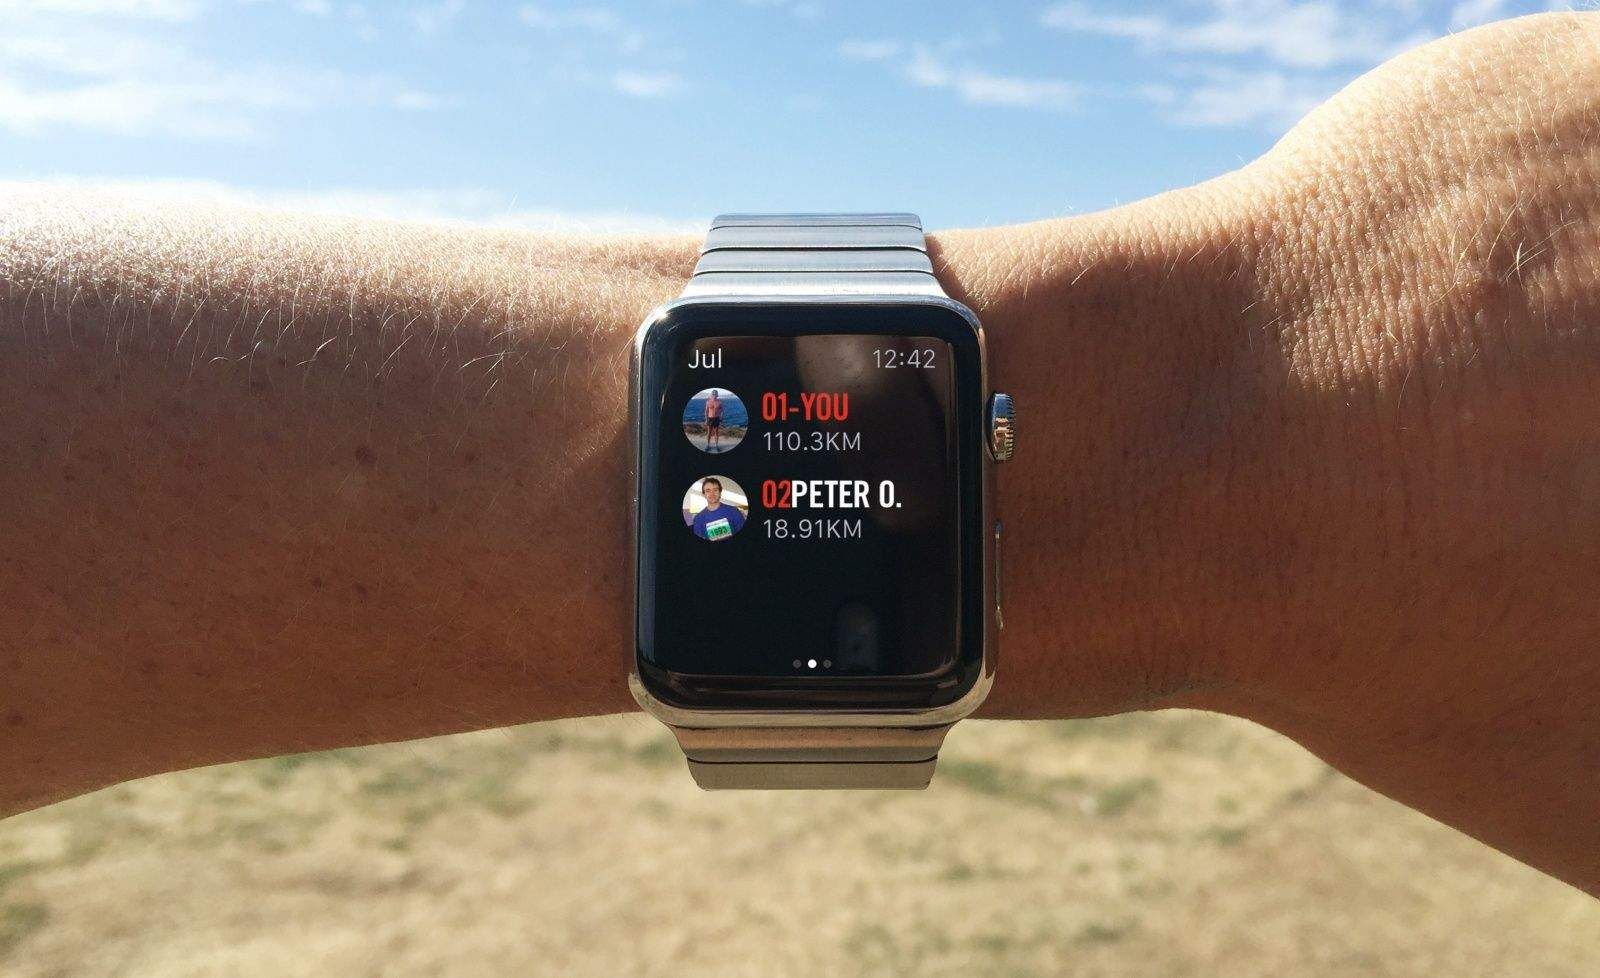 Nike+ shows your running buddies in a leaderboard. (Sorry Peter).